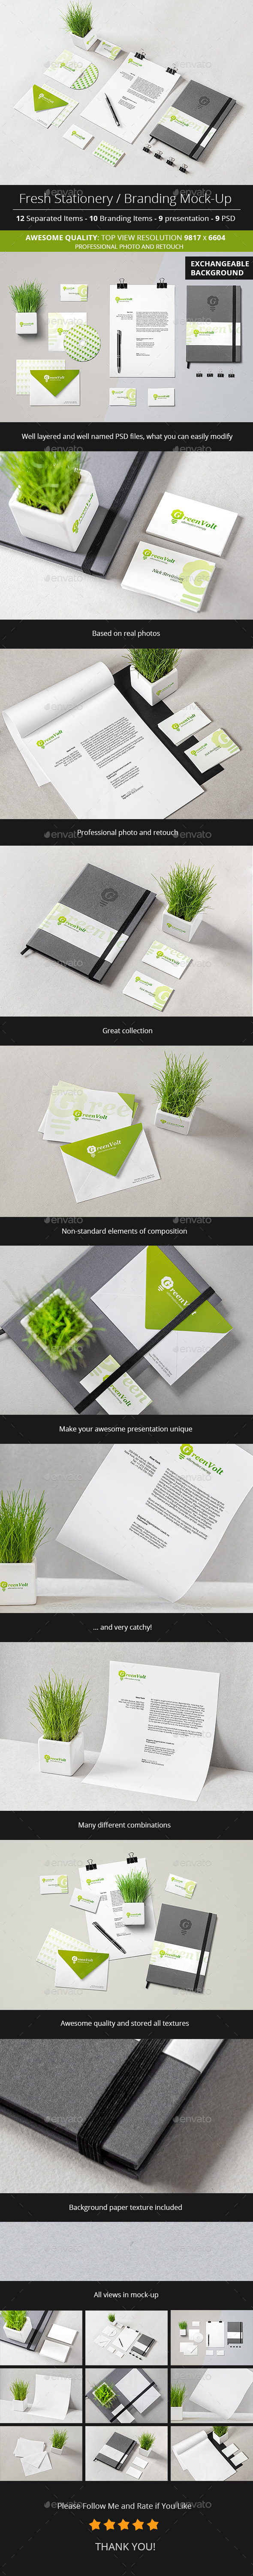 Fresh Stationery / Branding Mock-Up (Stationery)